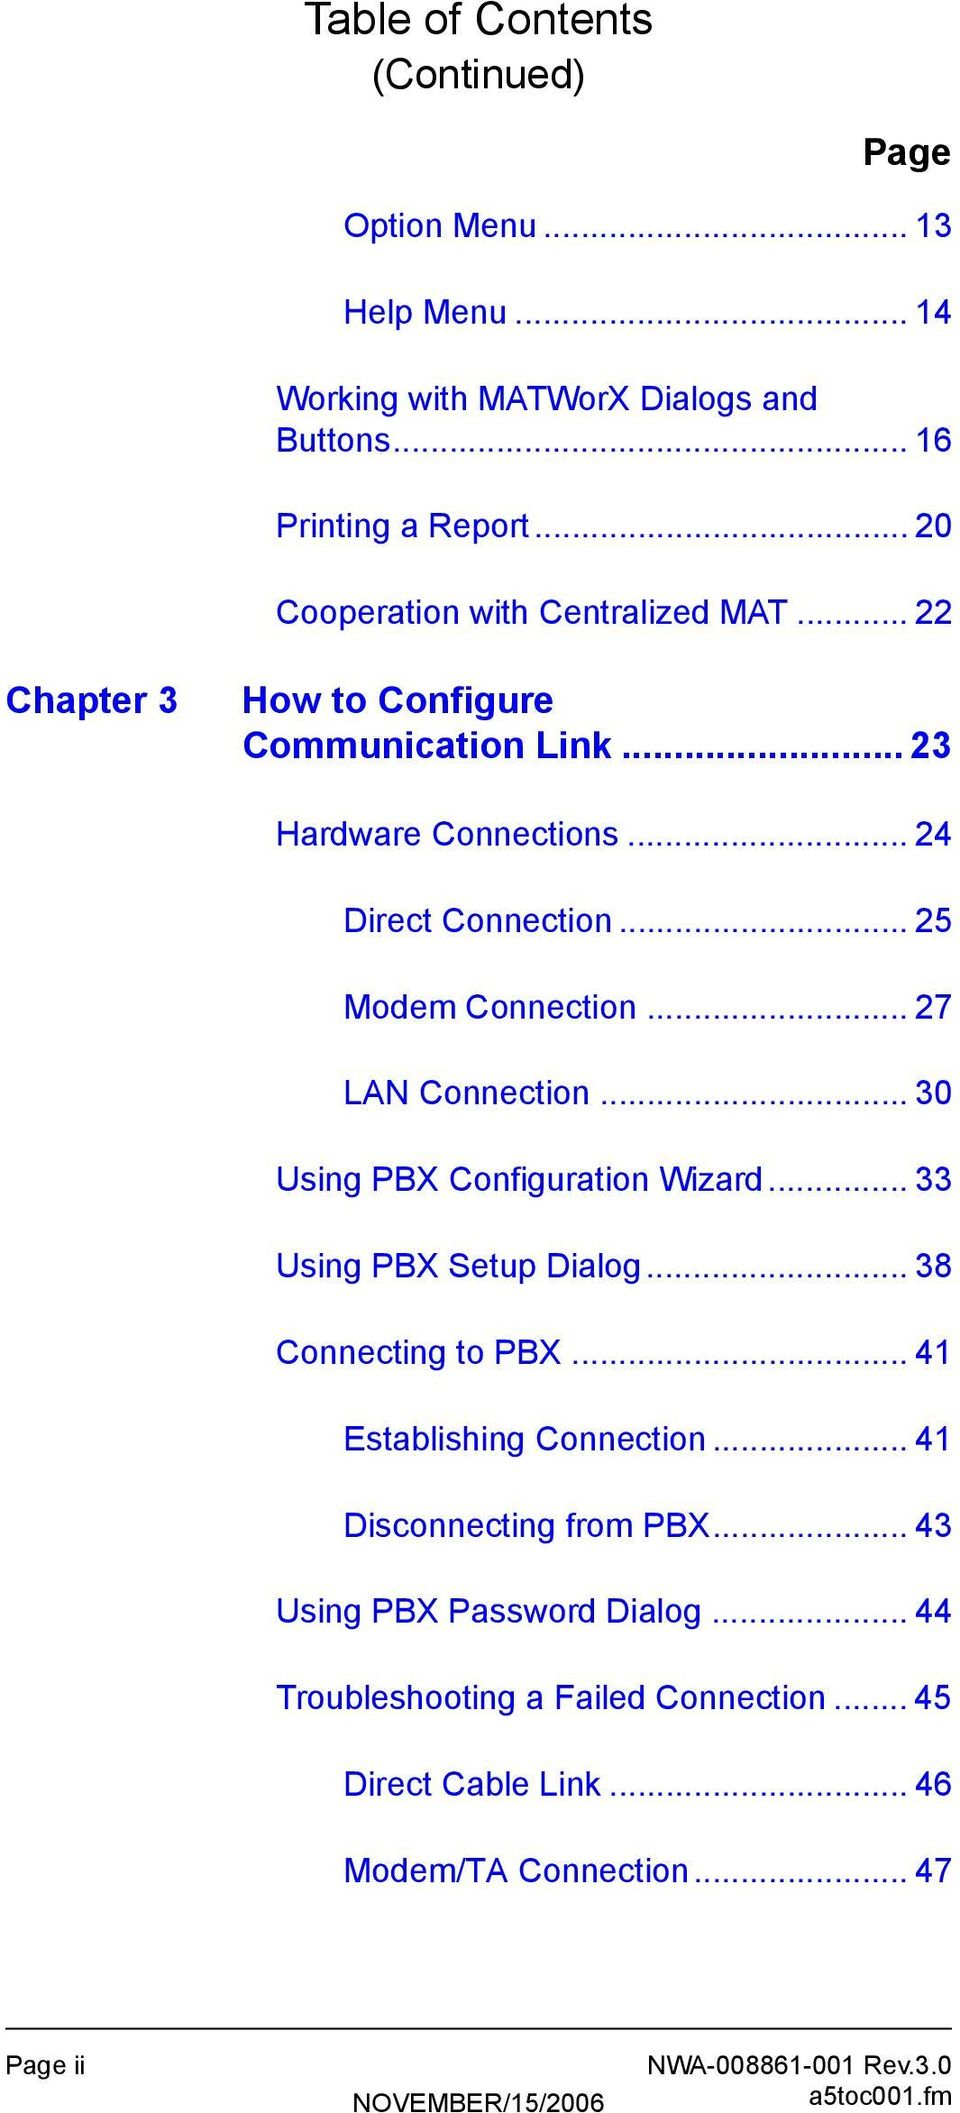 .. 25 Modem Connection... 27 LAN Connection... 30 Using PBX Configuration Wizard... 33 Using PBX Setup Dialog... 38 Connecting to PBX.